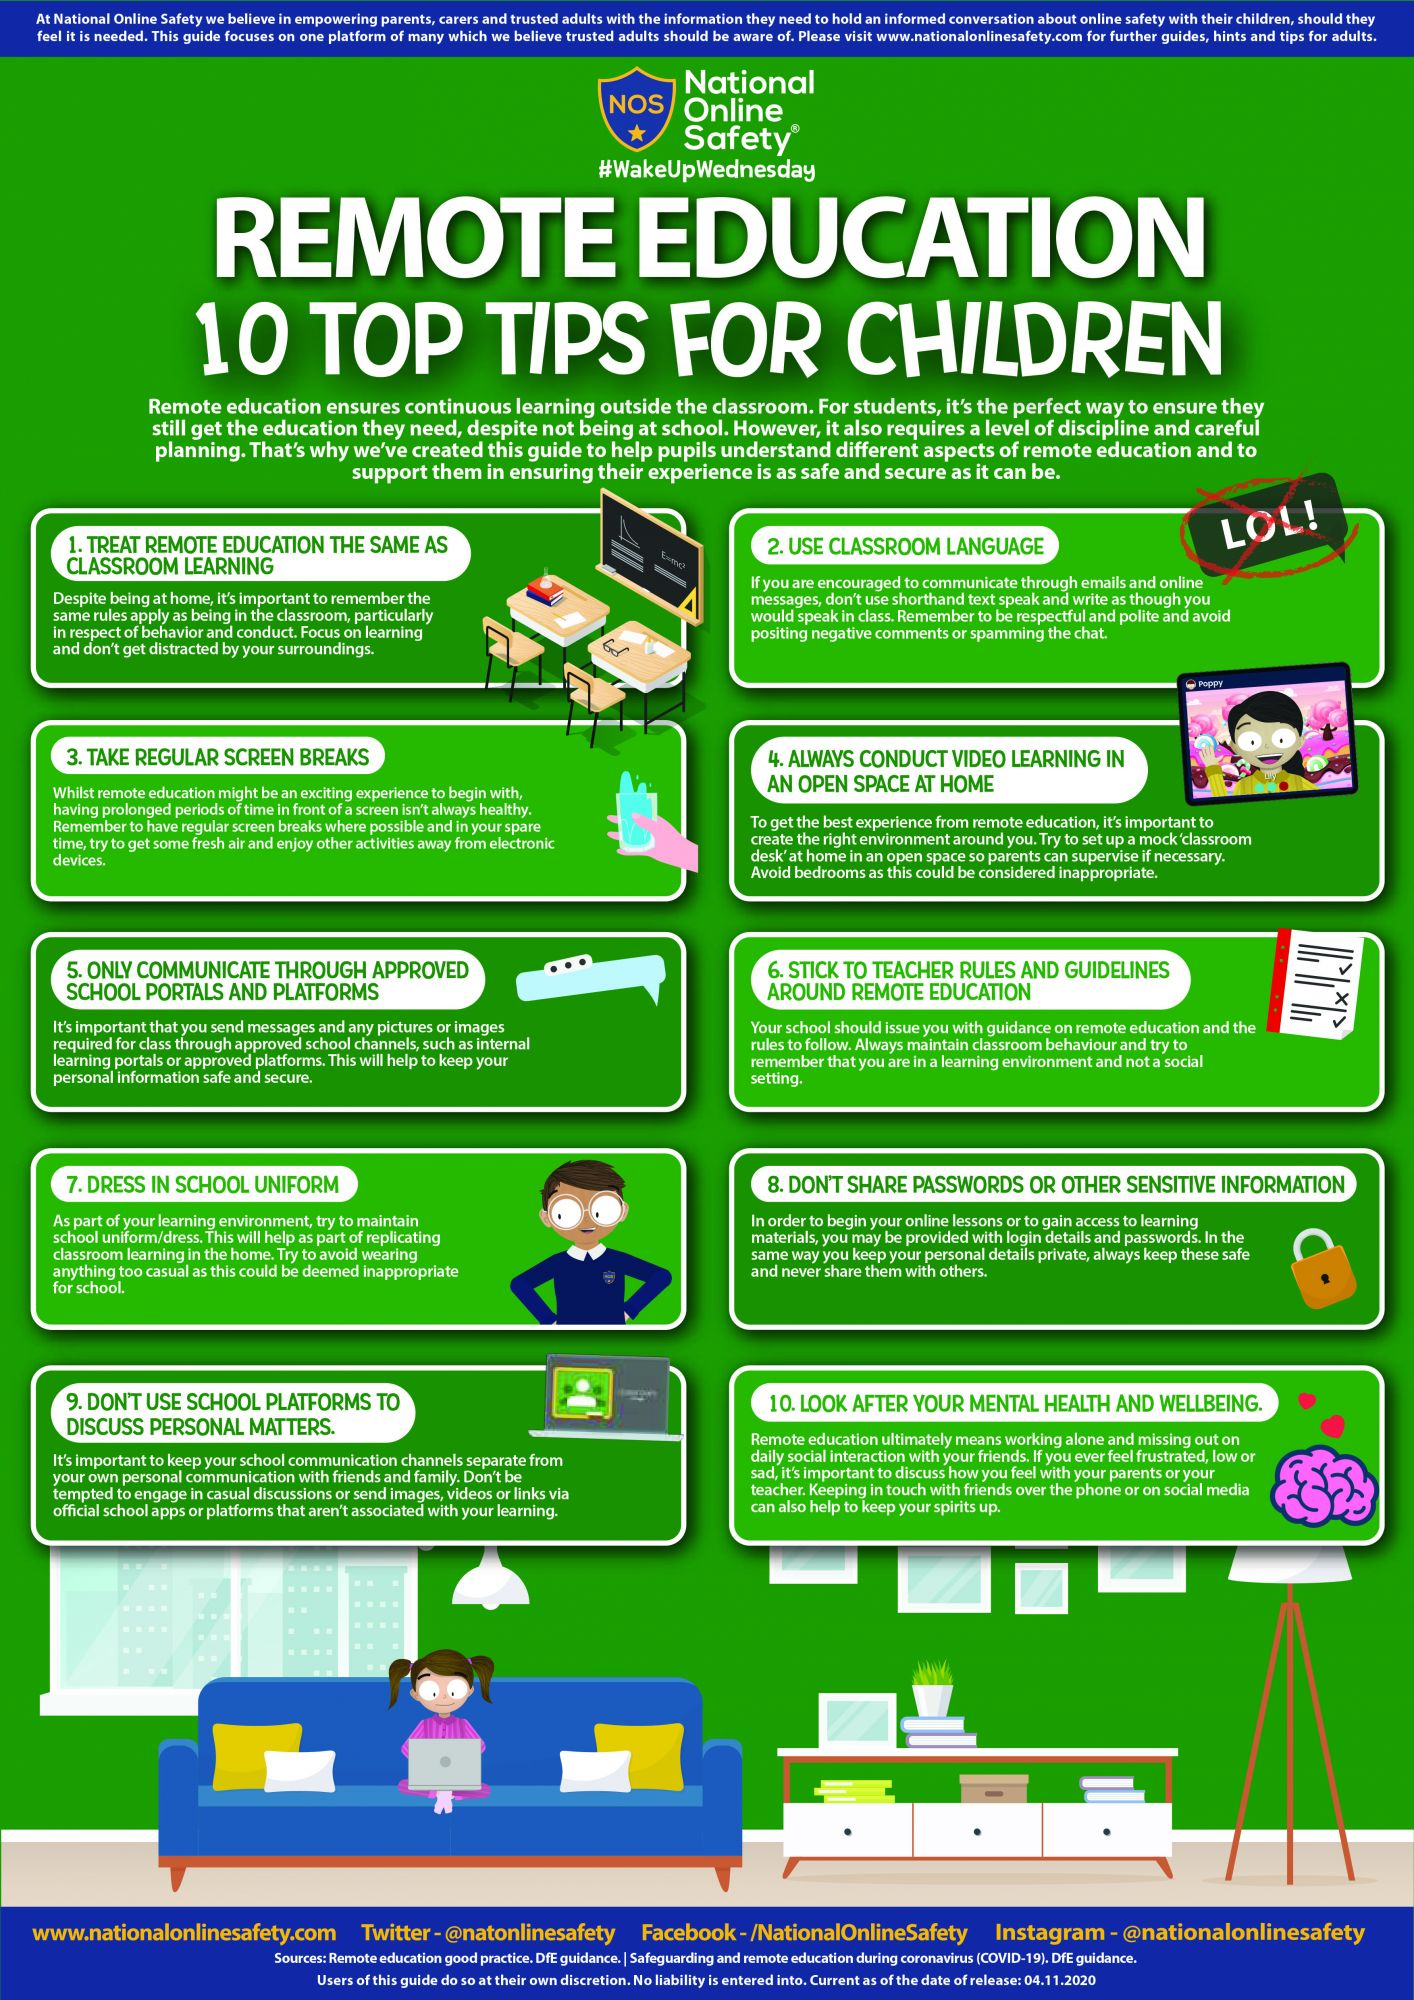 Remote_Education_10_Tips_for_Children.jpg